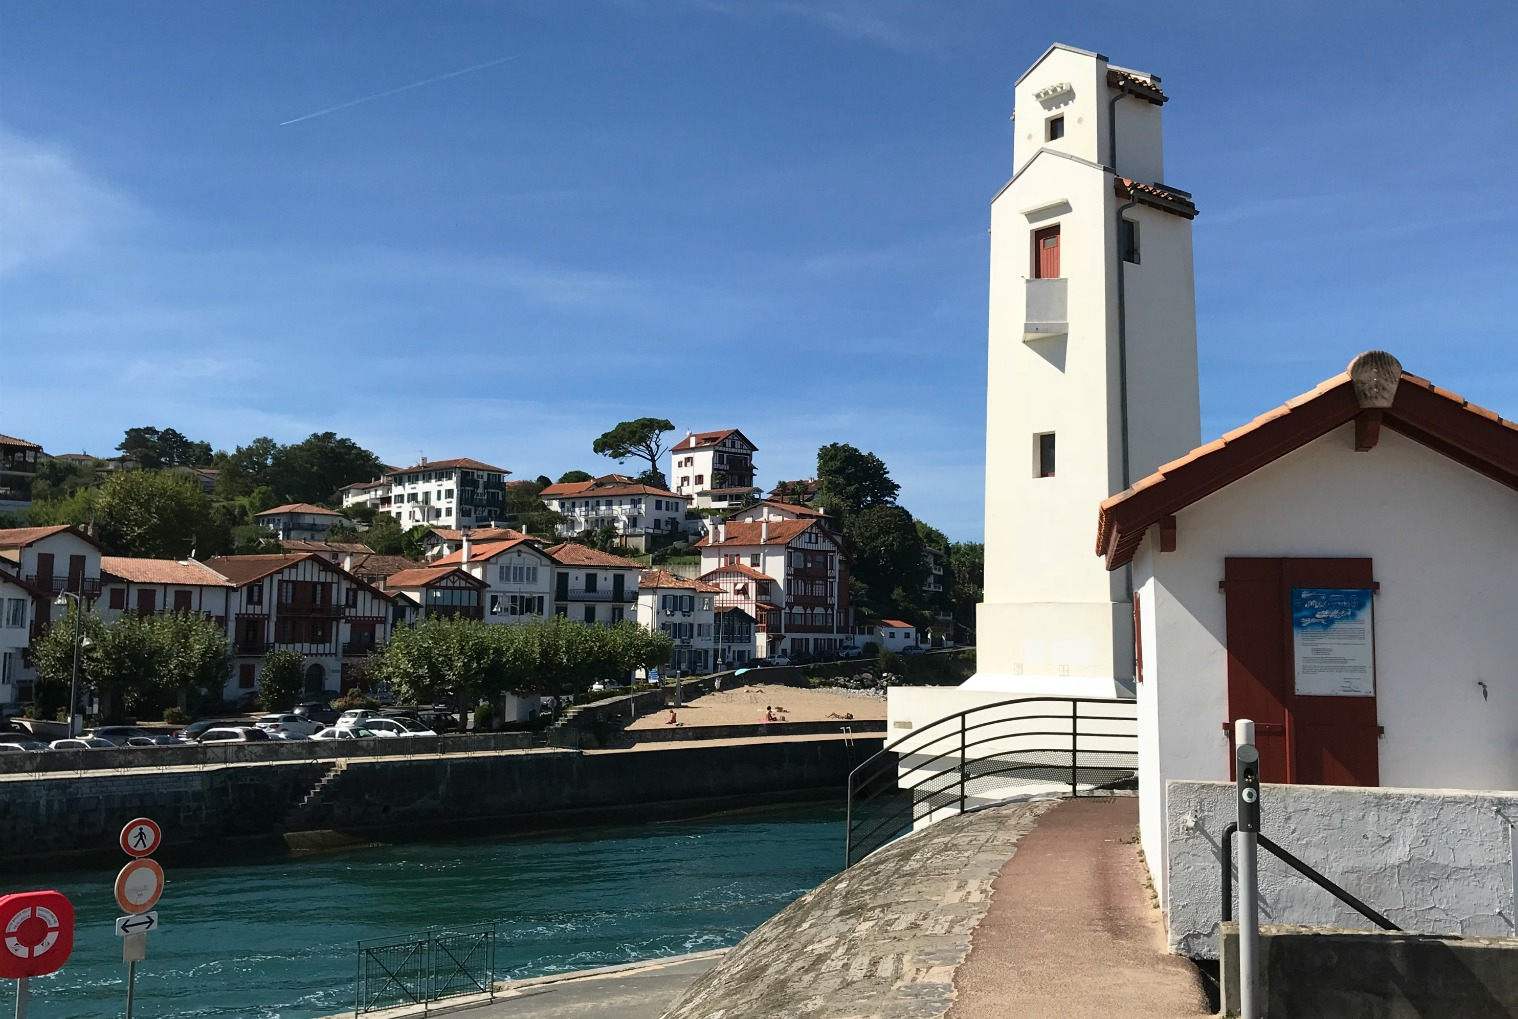 Entrance to St-Jean-de-Luz harbour